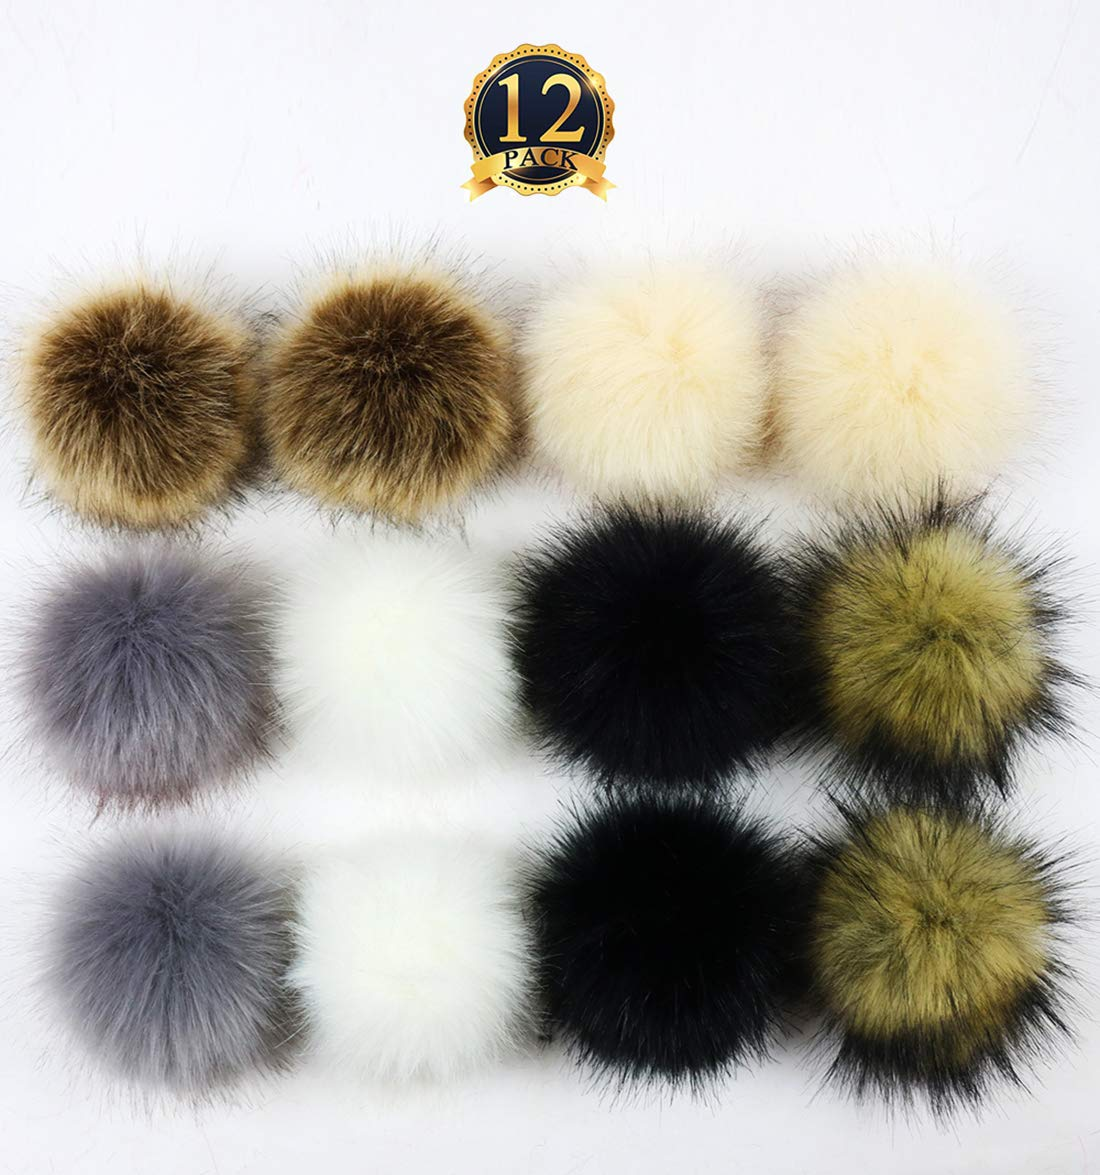 Faux Fur Pom Pom Ball Fluffy Pompoms with Elastic Loop for DIY Hats Beanies Shoes Scarves Gloves Bag Keychain Charms Knitting Accessories (12 Pieces)